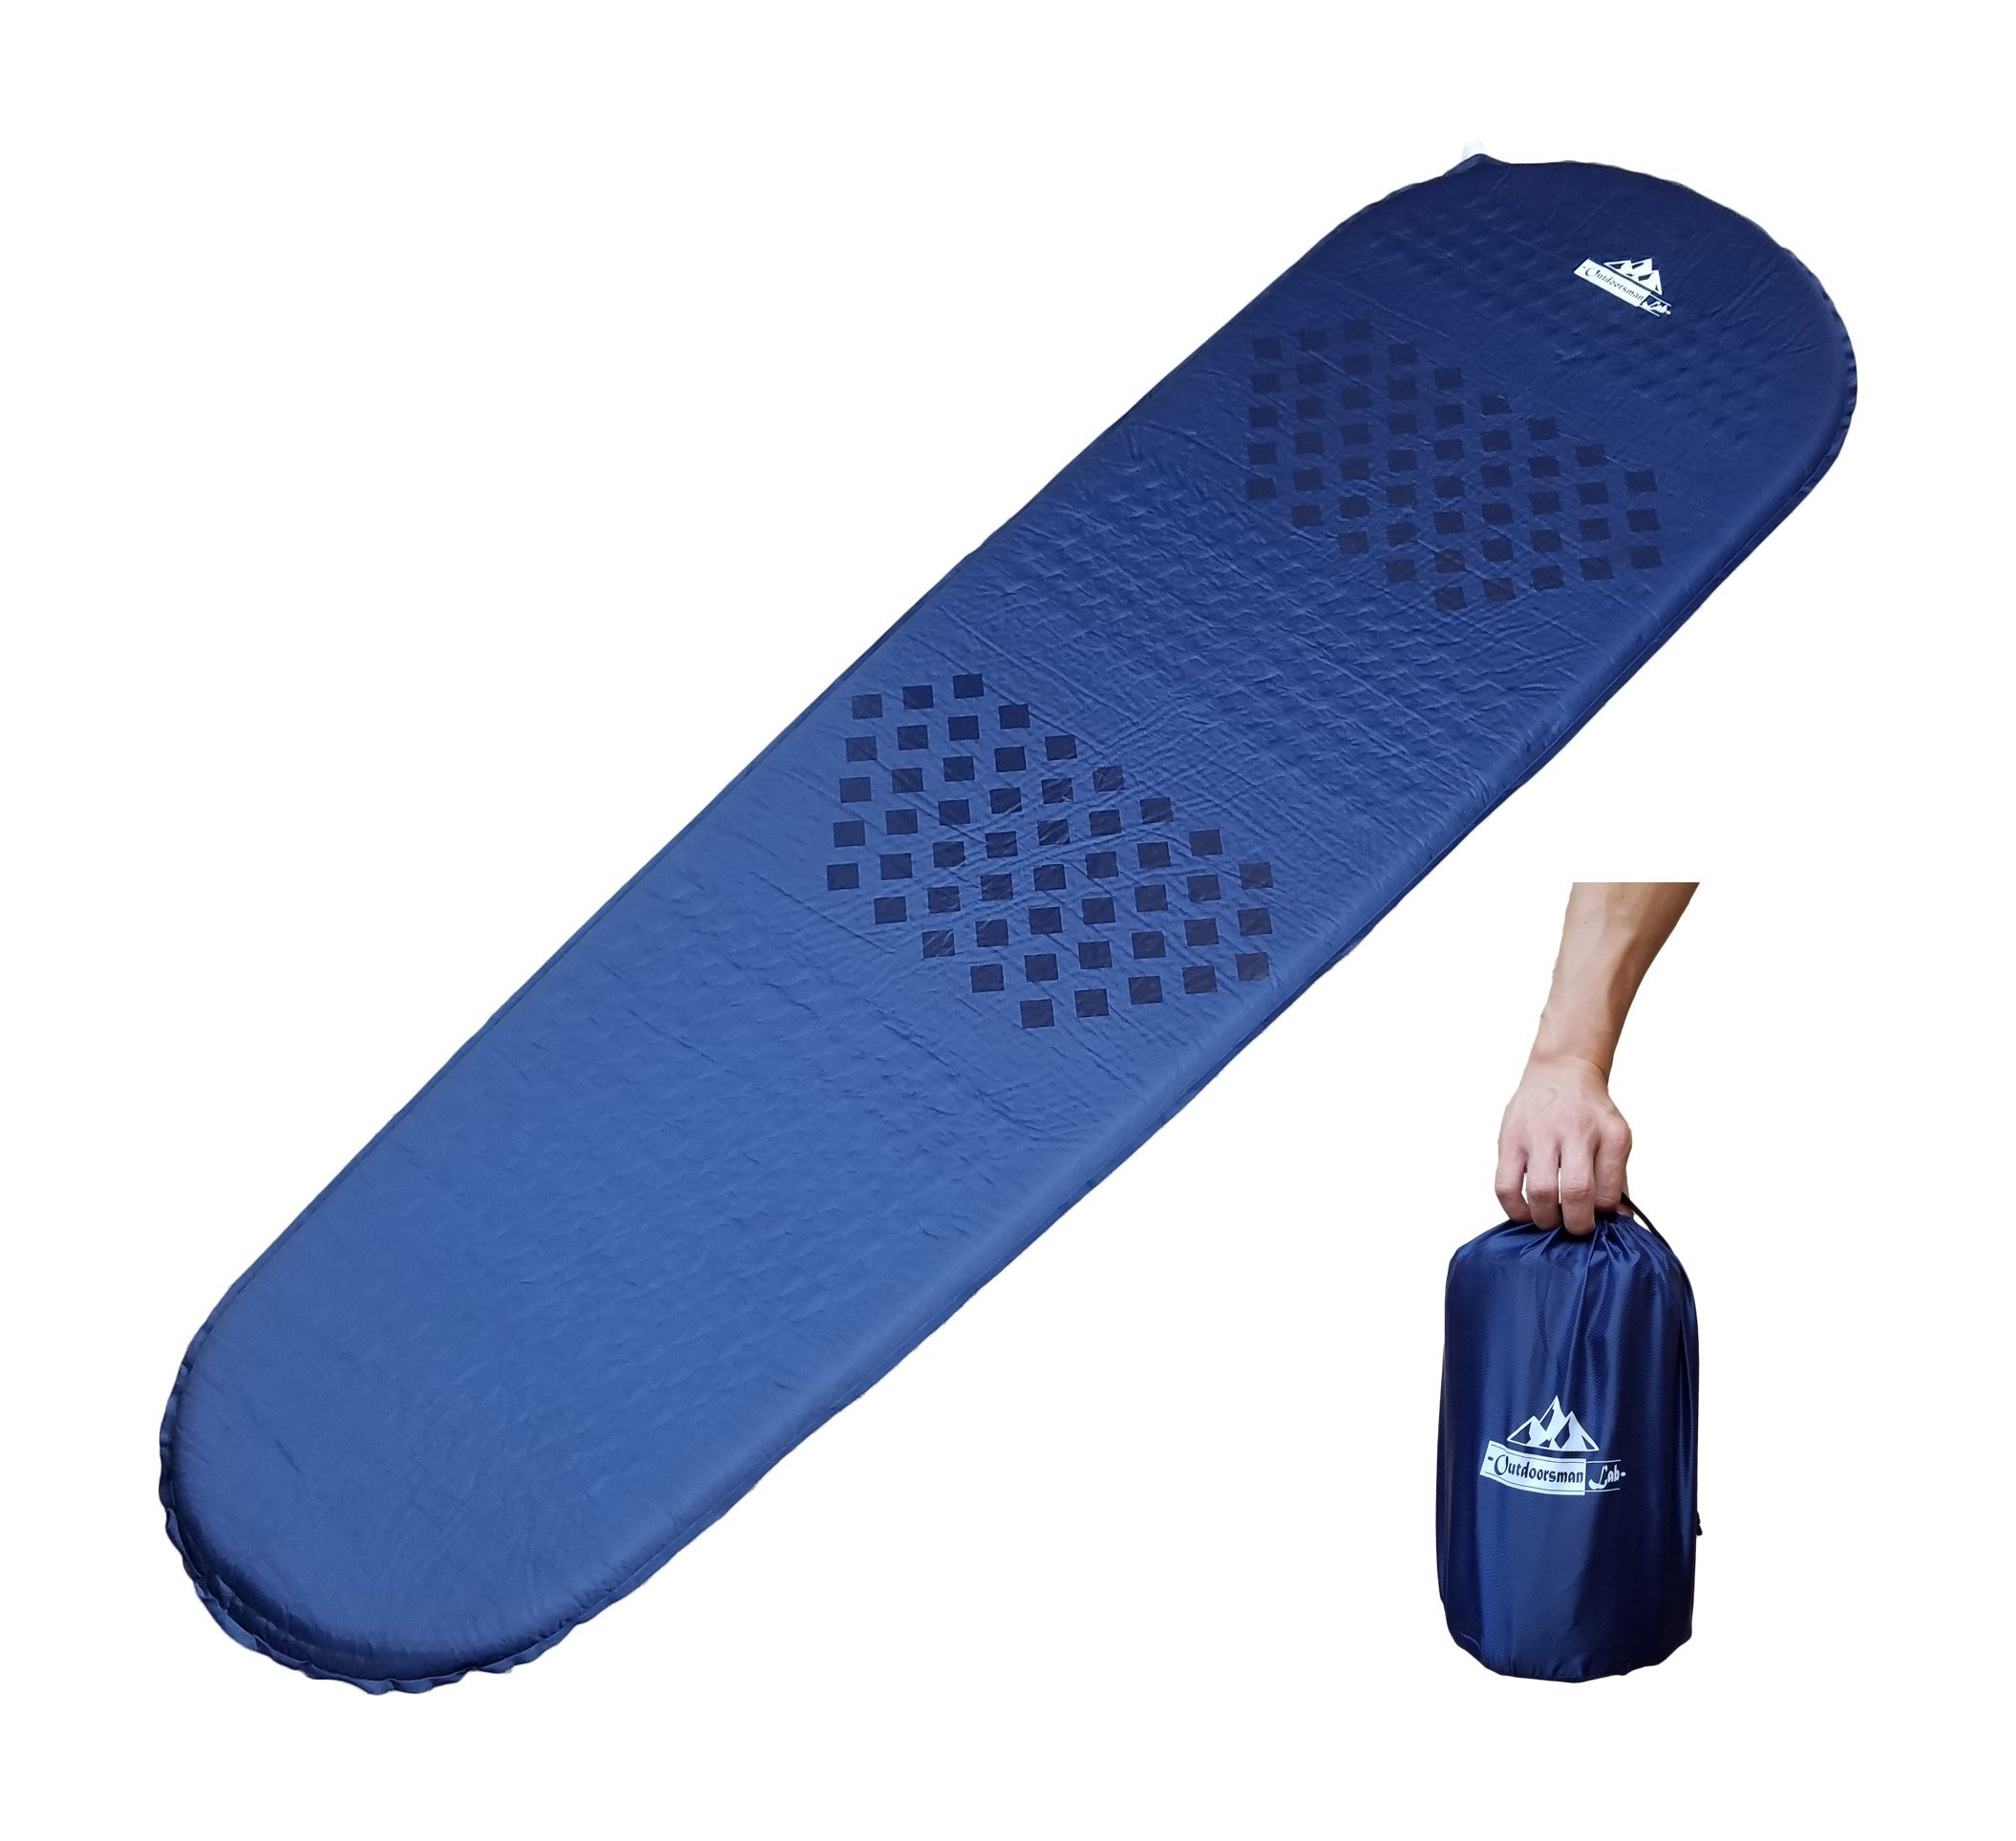 Outdoorsman Lab Self-Inflating Sleeping Pad - Lightweight, Compact, Perfect for Backpacking, Camping, Traveling. Insulated for 3-4 Season Camping